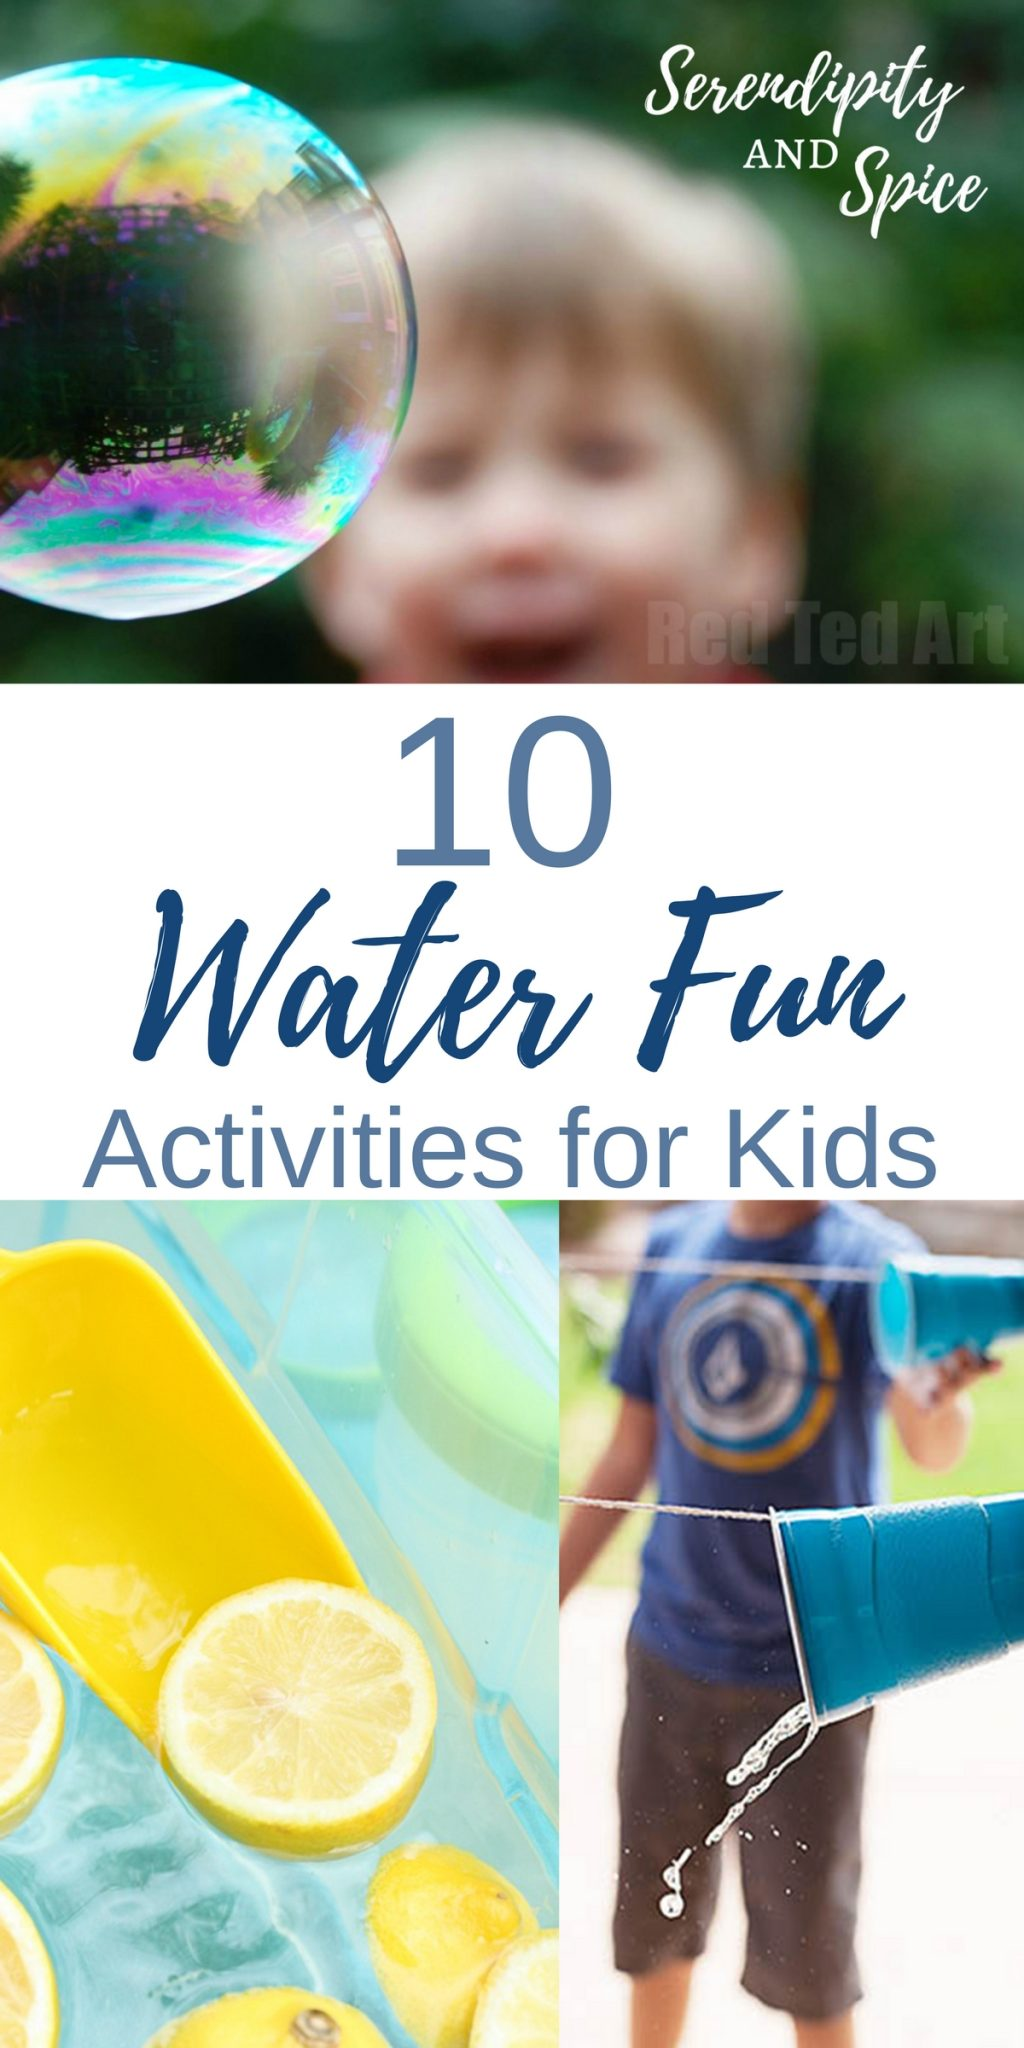 Water Fun Activities